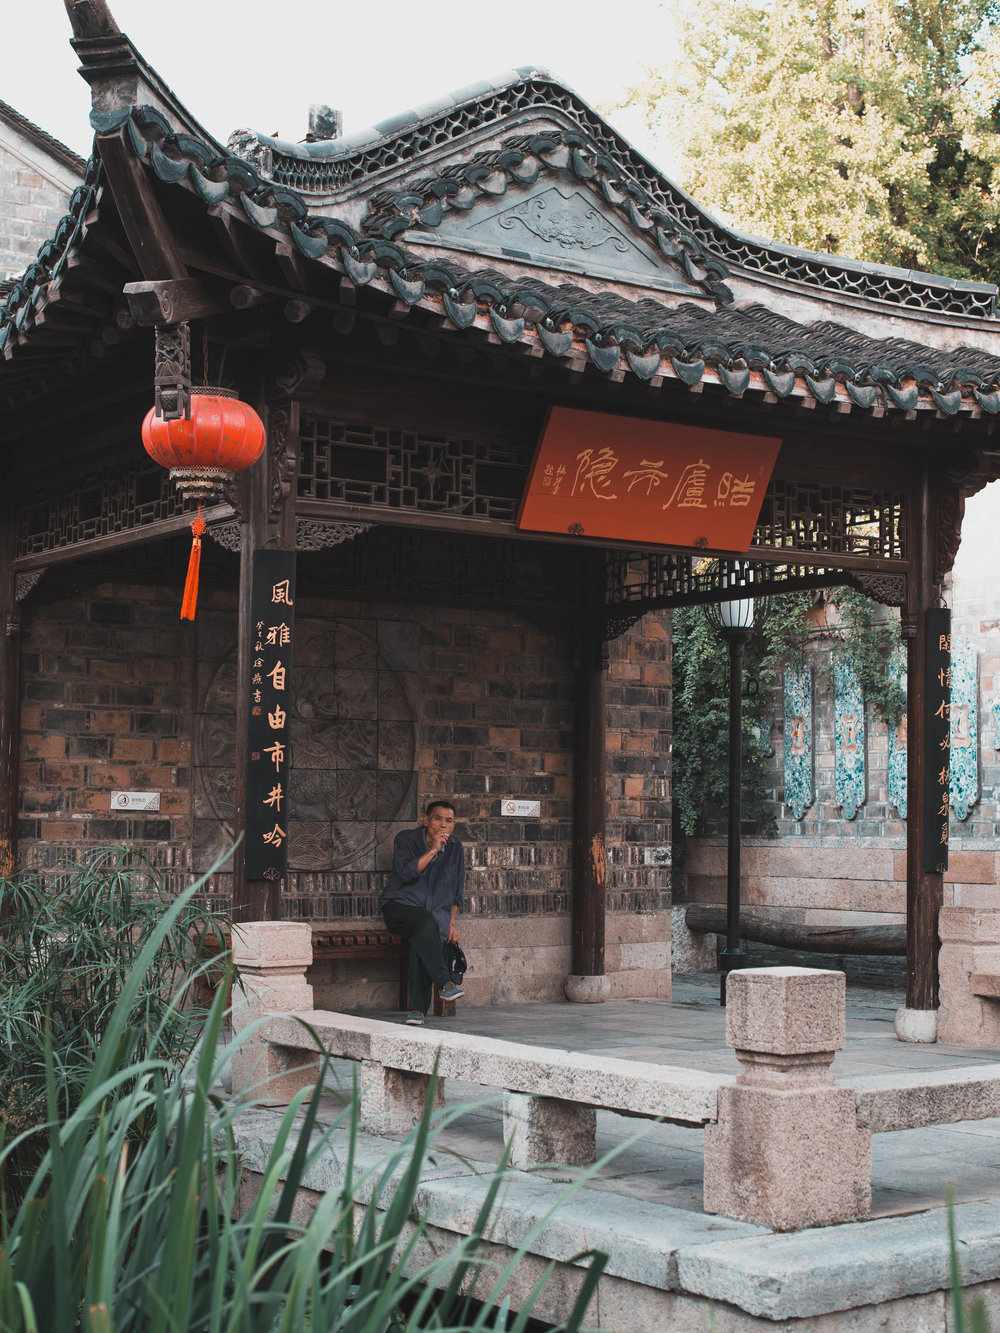 A small temple in the Fuzimiao area in Nanjing